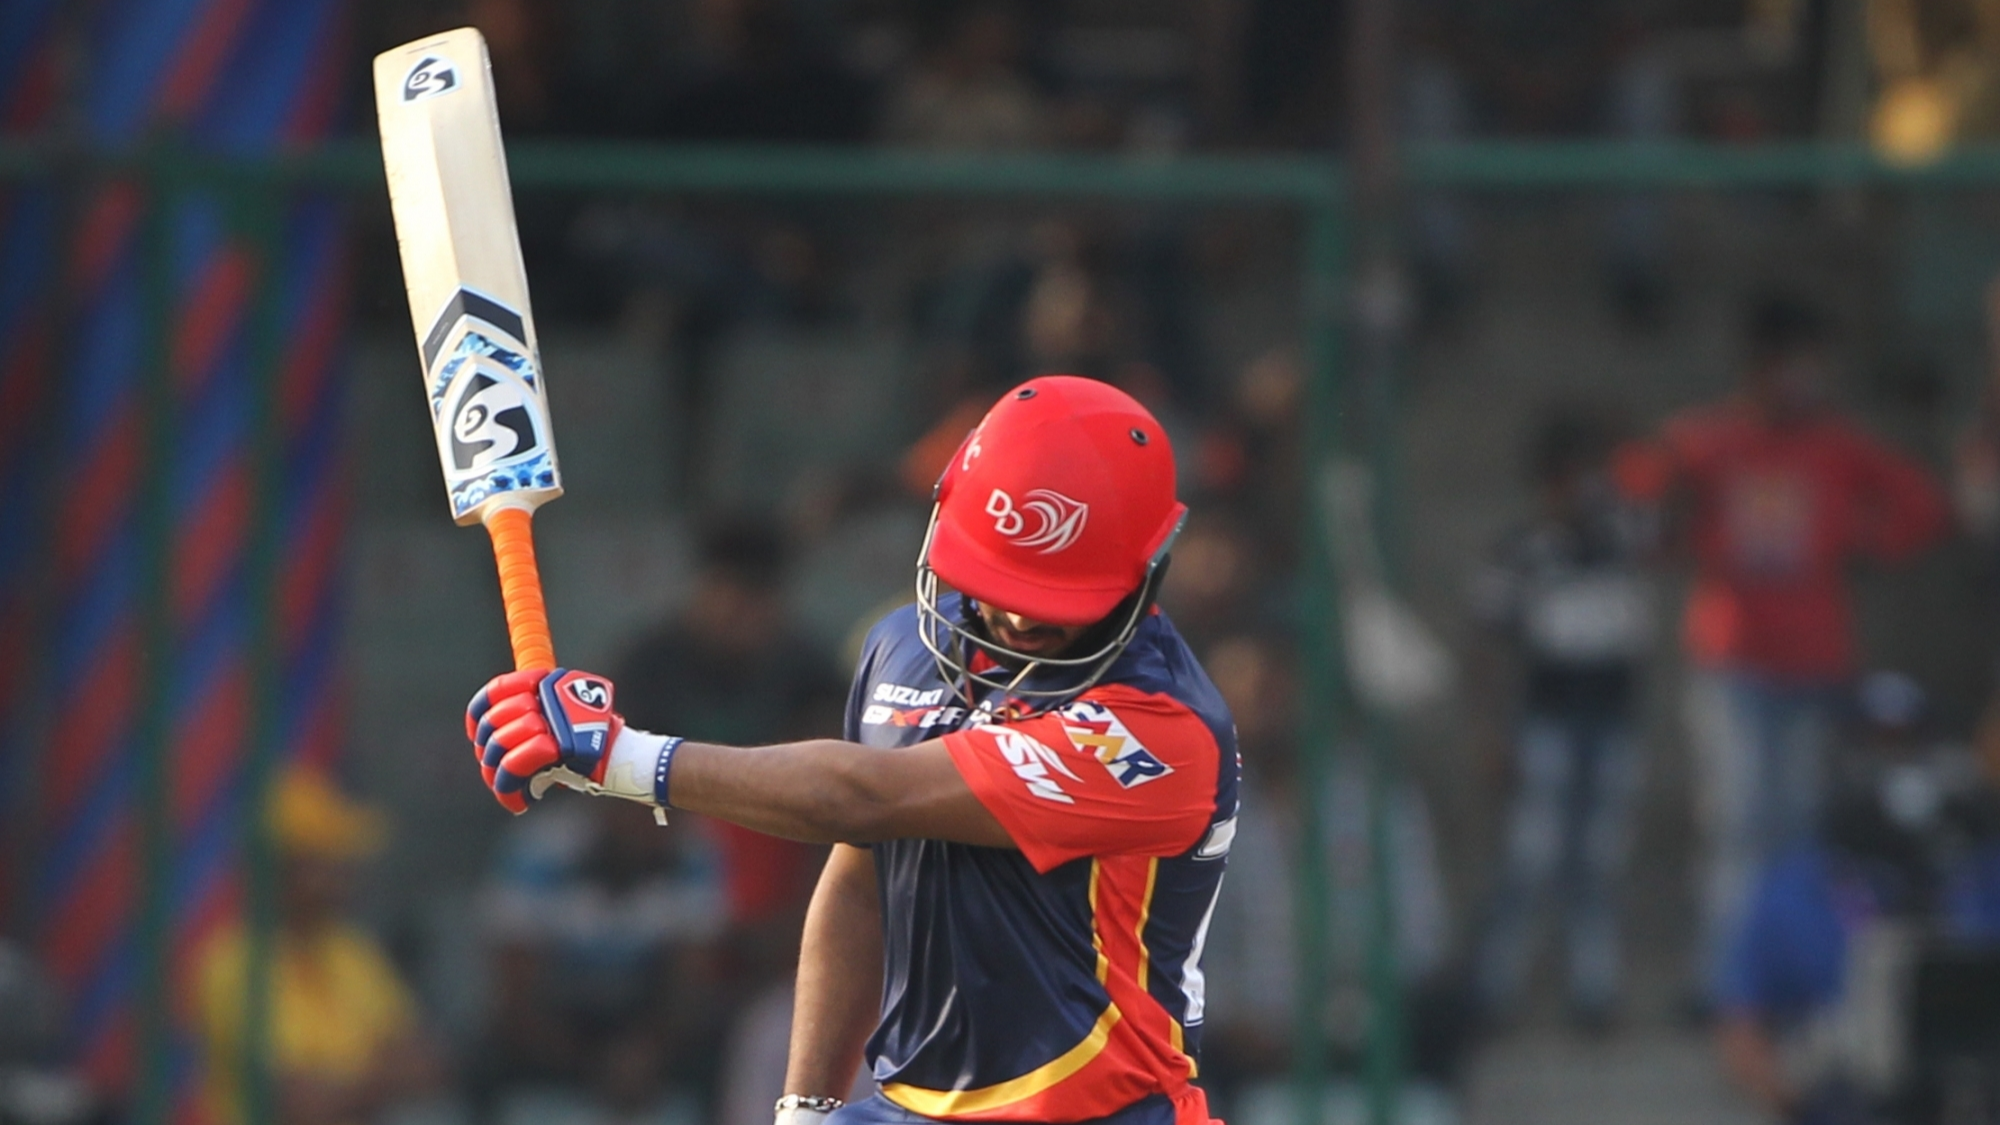 IPL 2018: Twitterati hails Rishabh pant as he finishes this season on a high